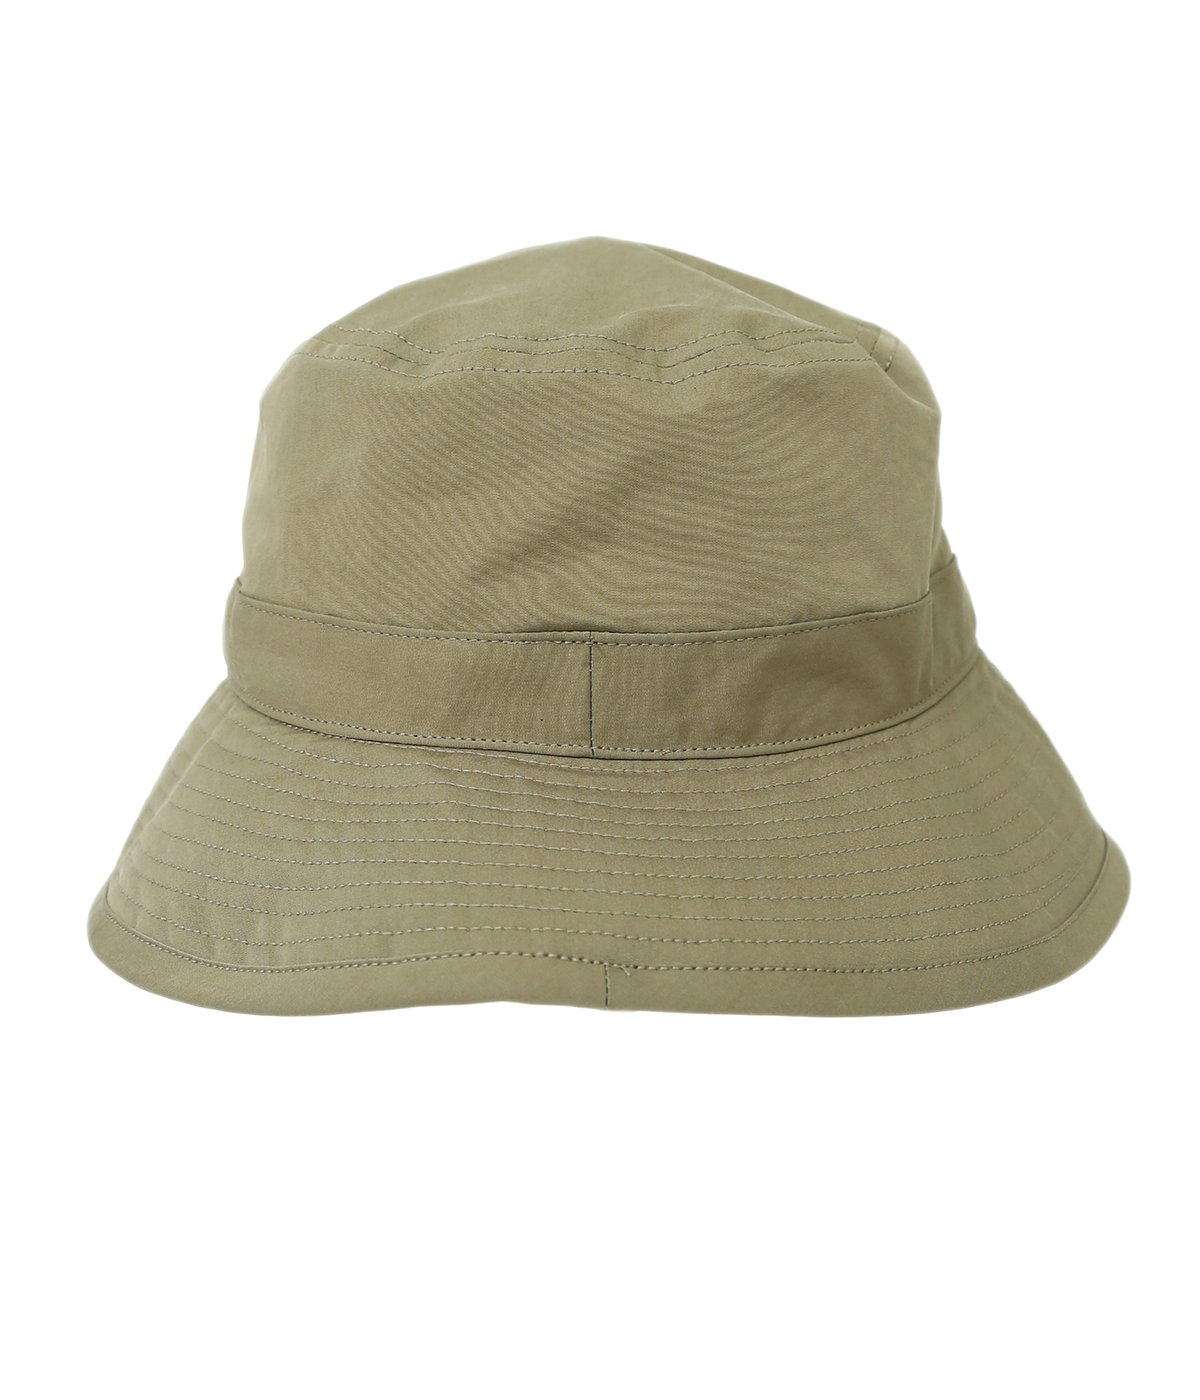 HIGH COUNT RUBBER CLOTH BUCKET HAT